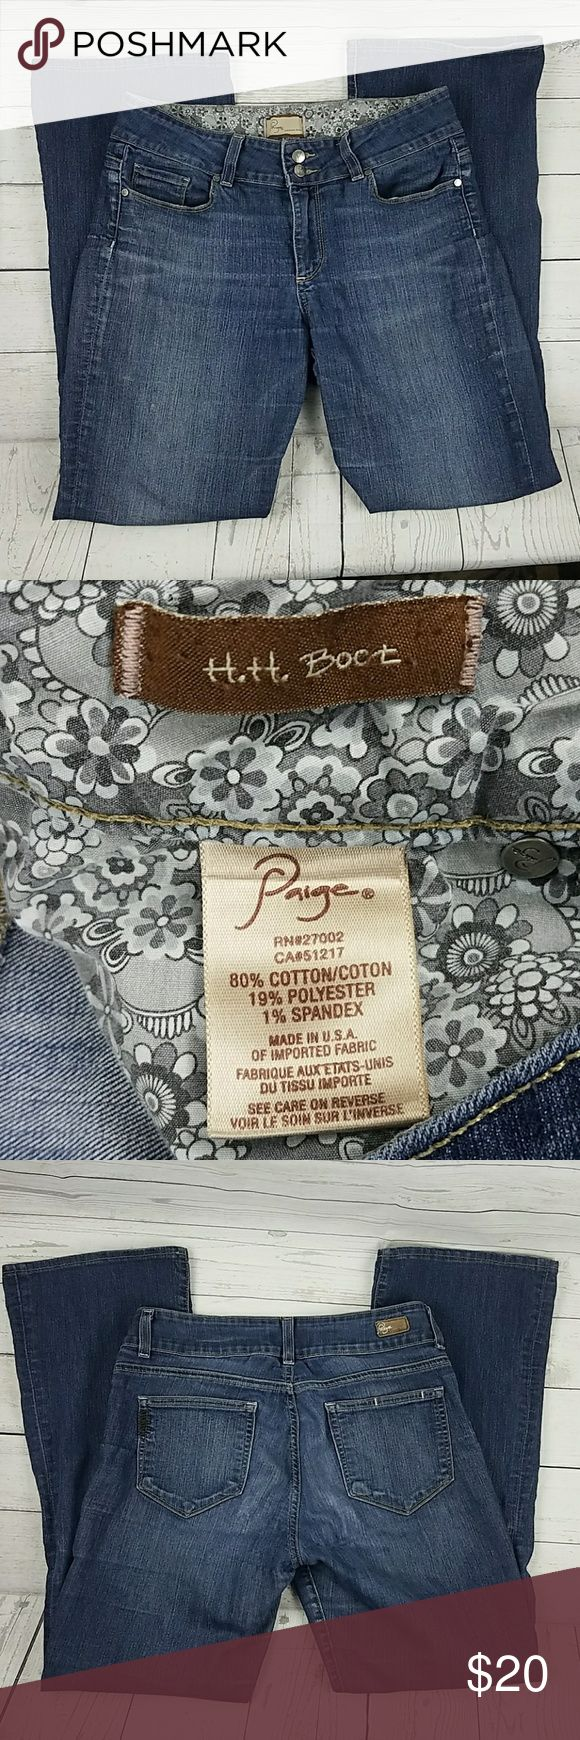 Women's Paige Jean's Boot Cut Size 30 Women's Paige Jean's are in good condition. Gently Worn. Boot Cut Size 30 Inseam 30 Rise 9 Waist 15 Paige Jeans Jeans Boot Cut